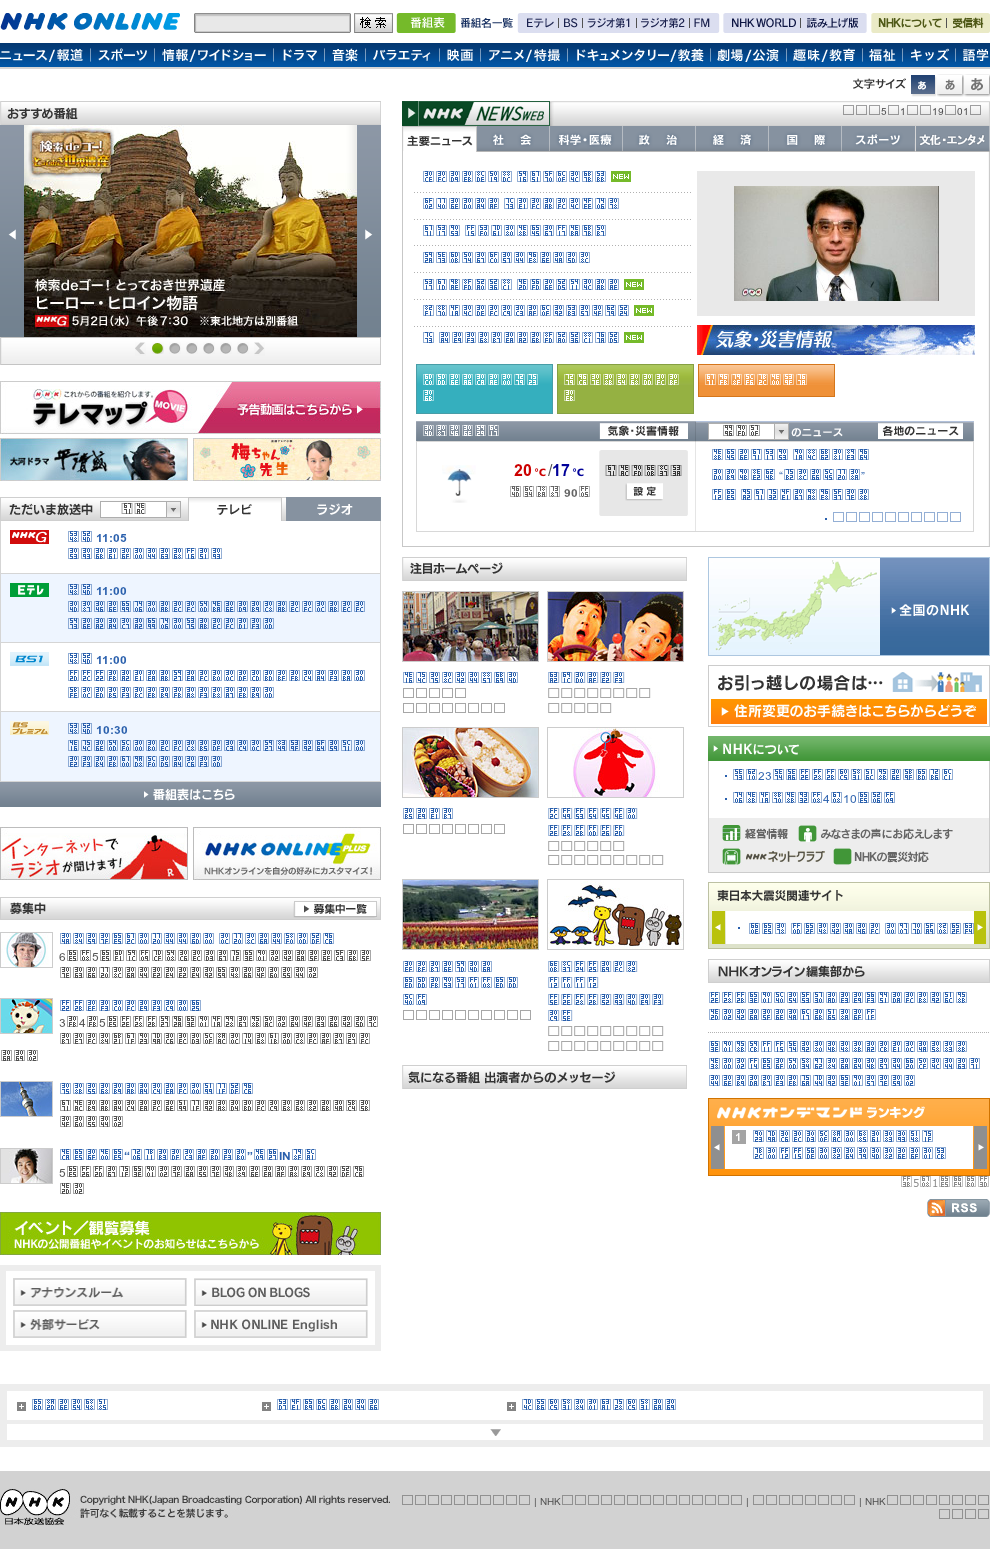 NHK Online at Wednesday May 2, 2012, 2:10 a.m. UTC